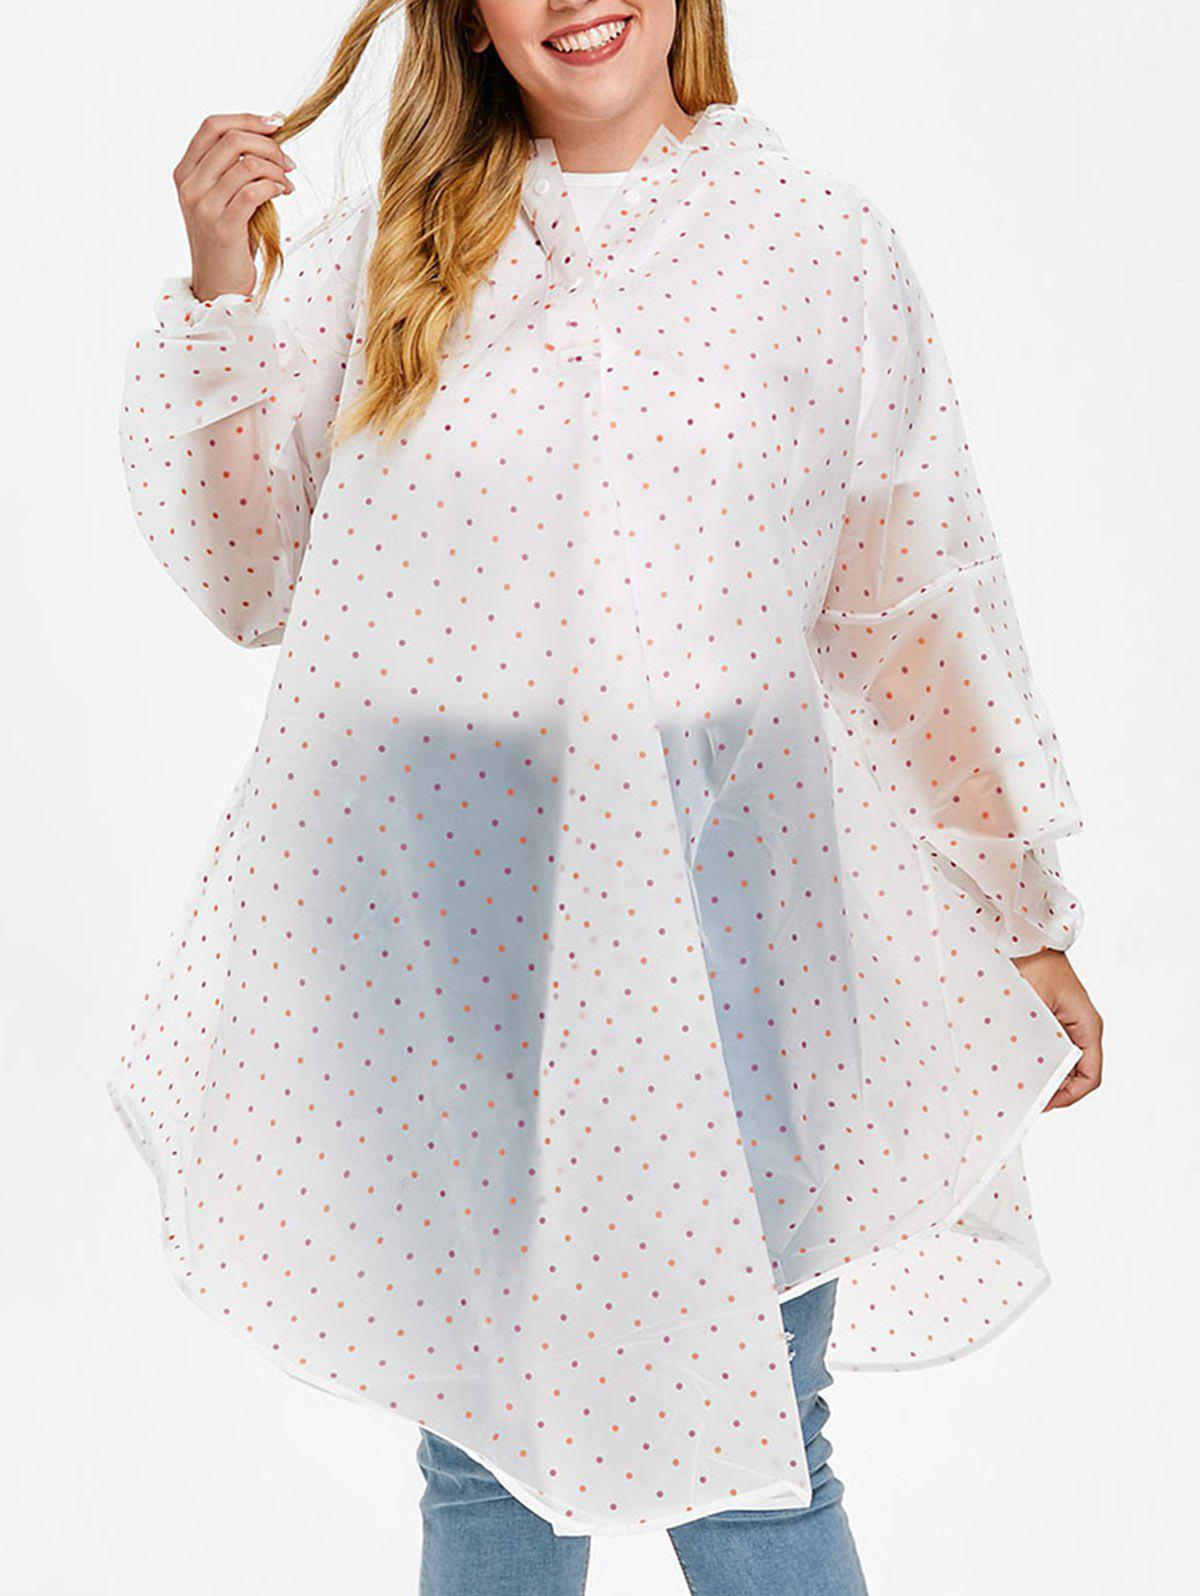 91ffde15f0234 Cheap Contrast Trim Plus Size Trim Polka Dot Raincoat